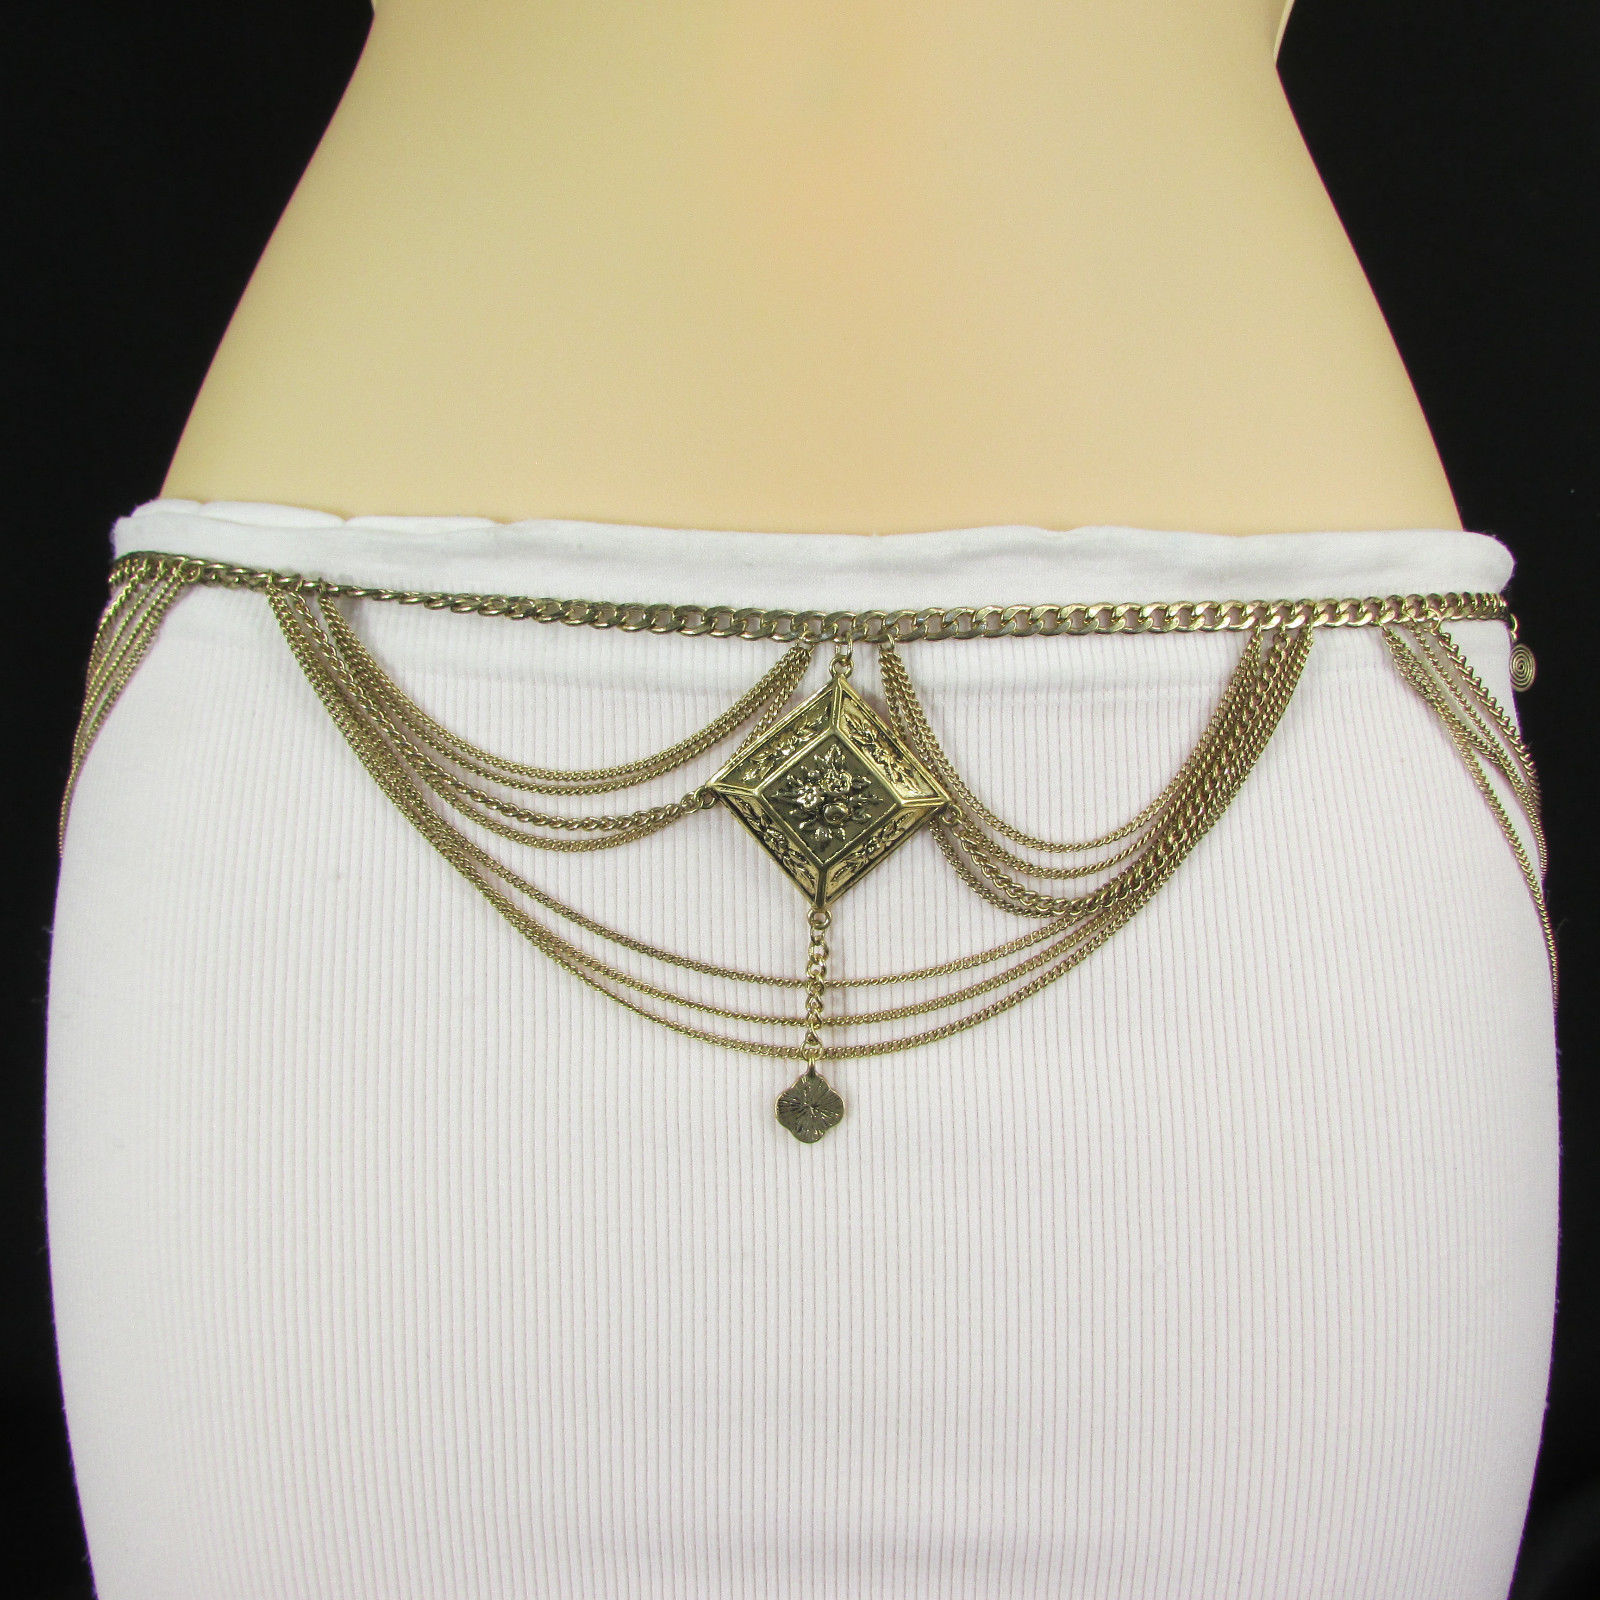 A Women Metal Chains Fashion Belt Gold Feathers Hip Waist 29-37 S M